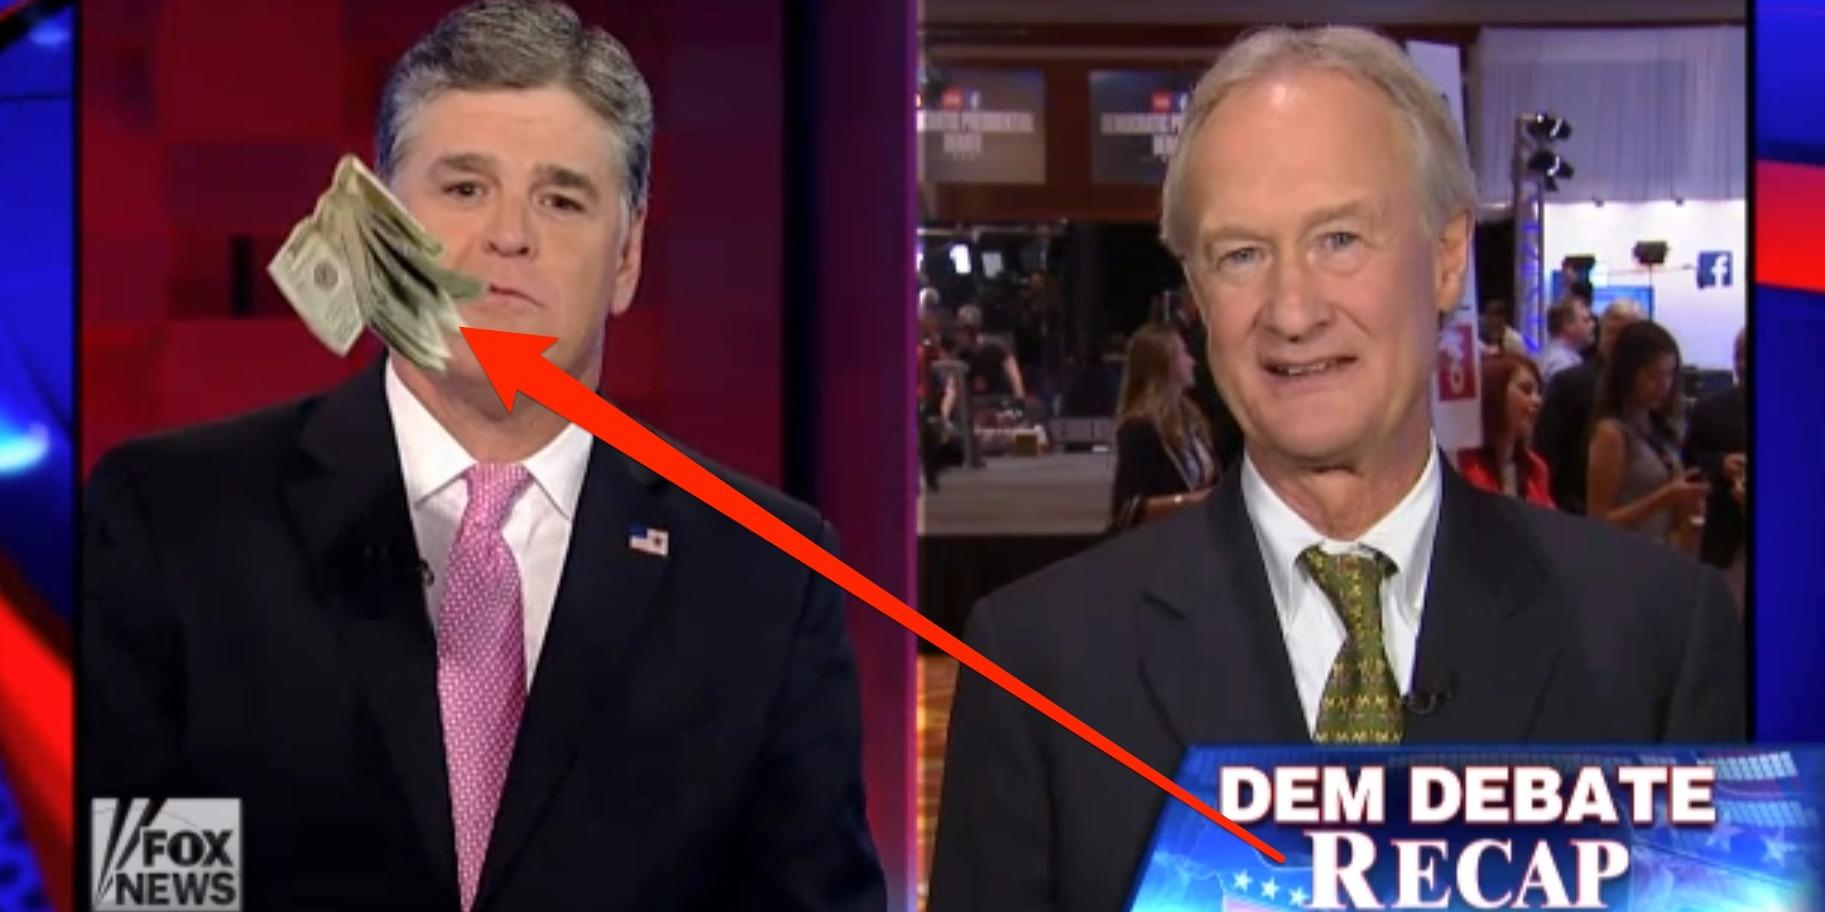 Sean Hannity Ended An Awkward Interview With A Democratic Candidate